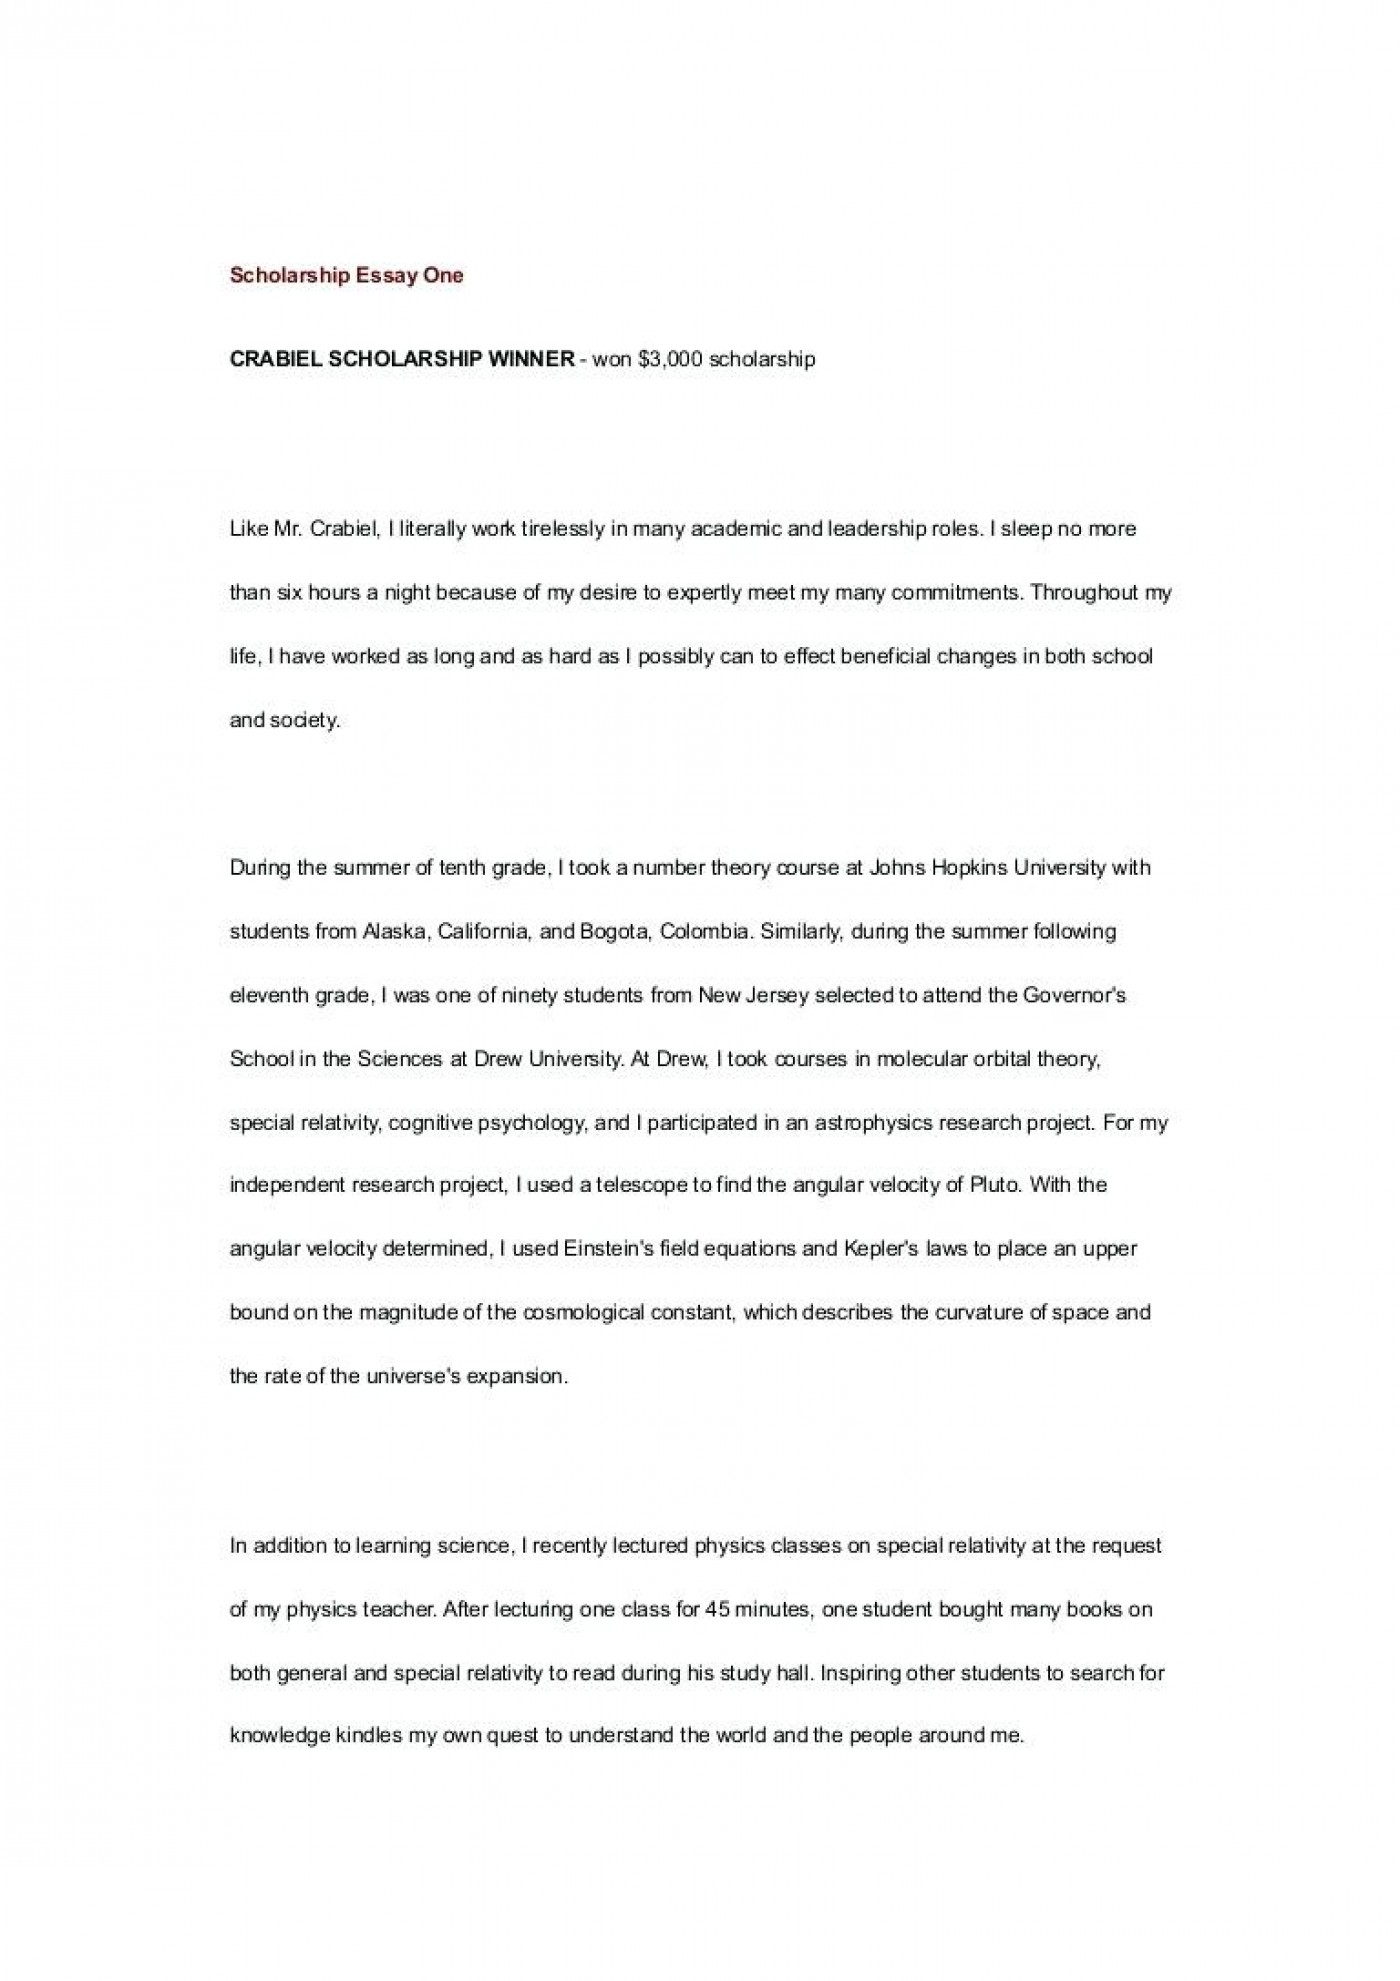 010 Essay Example No Scholarship College Application Template Legit Resume Cover Letter Thumbnail For Sample Wondrous Scholarships High School Seniors 2019 1400